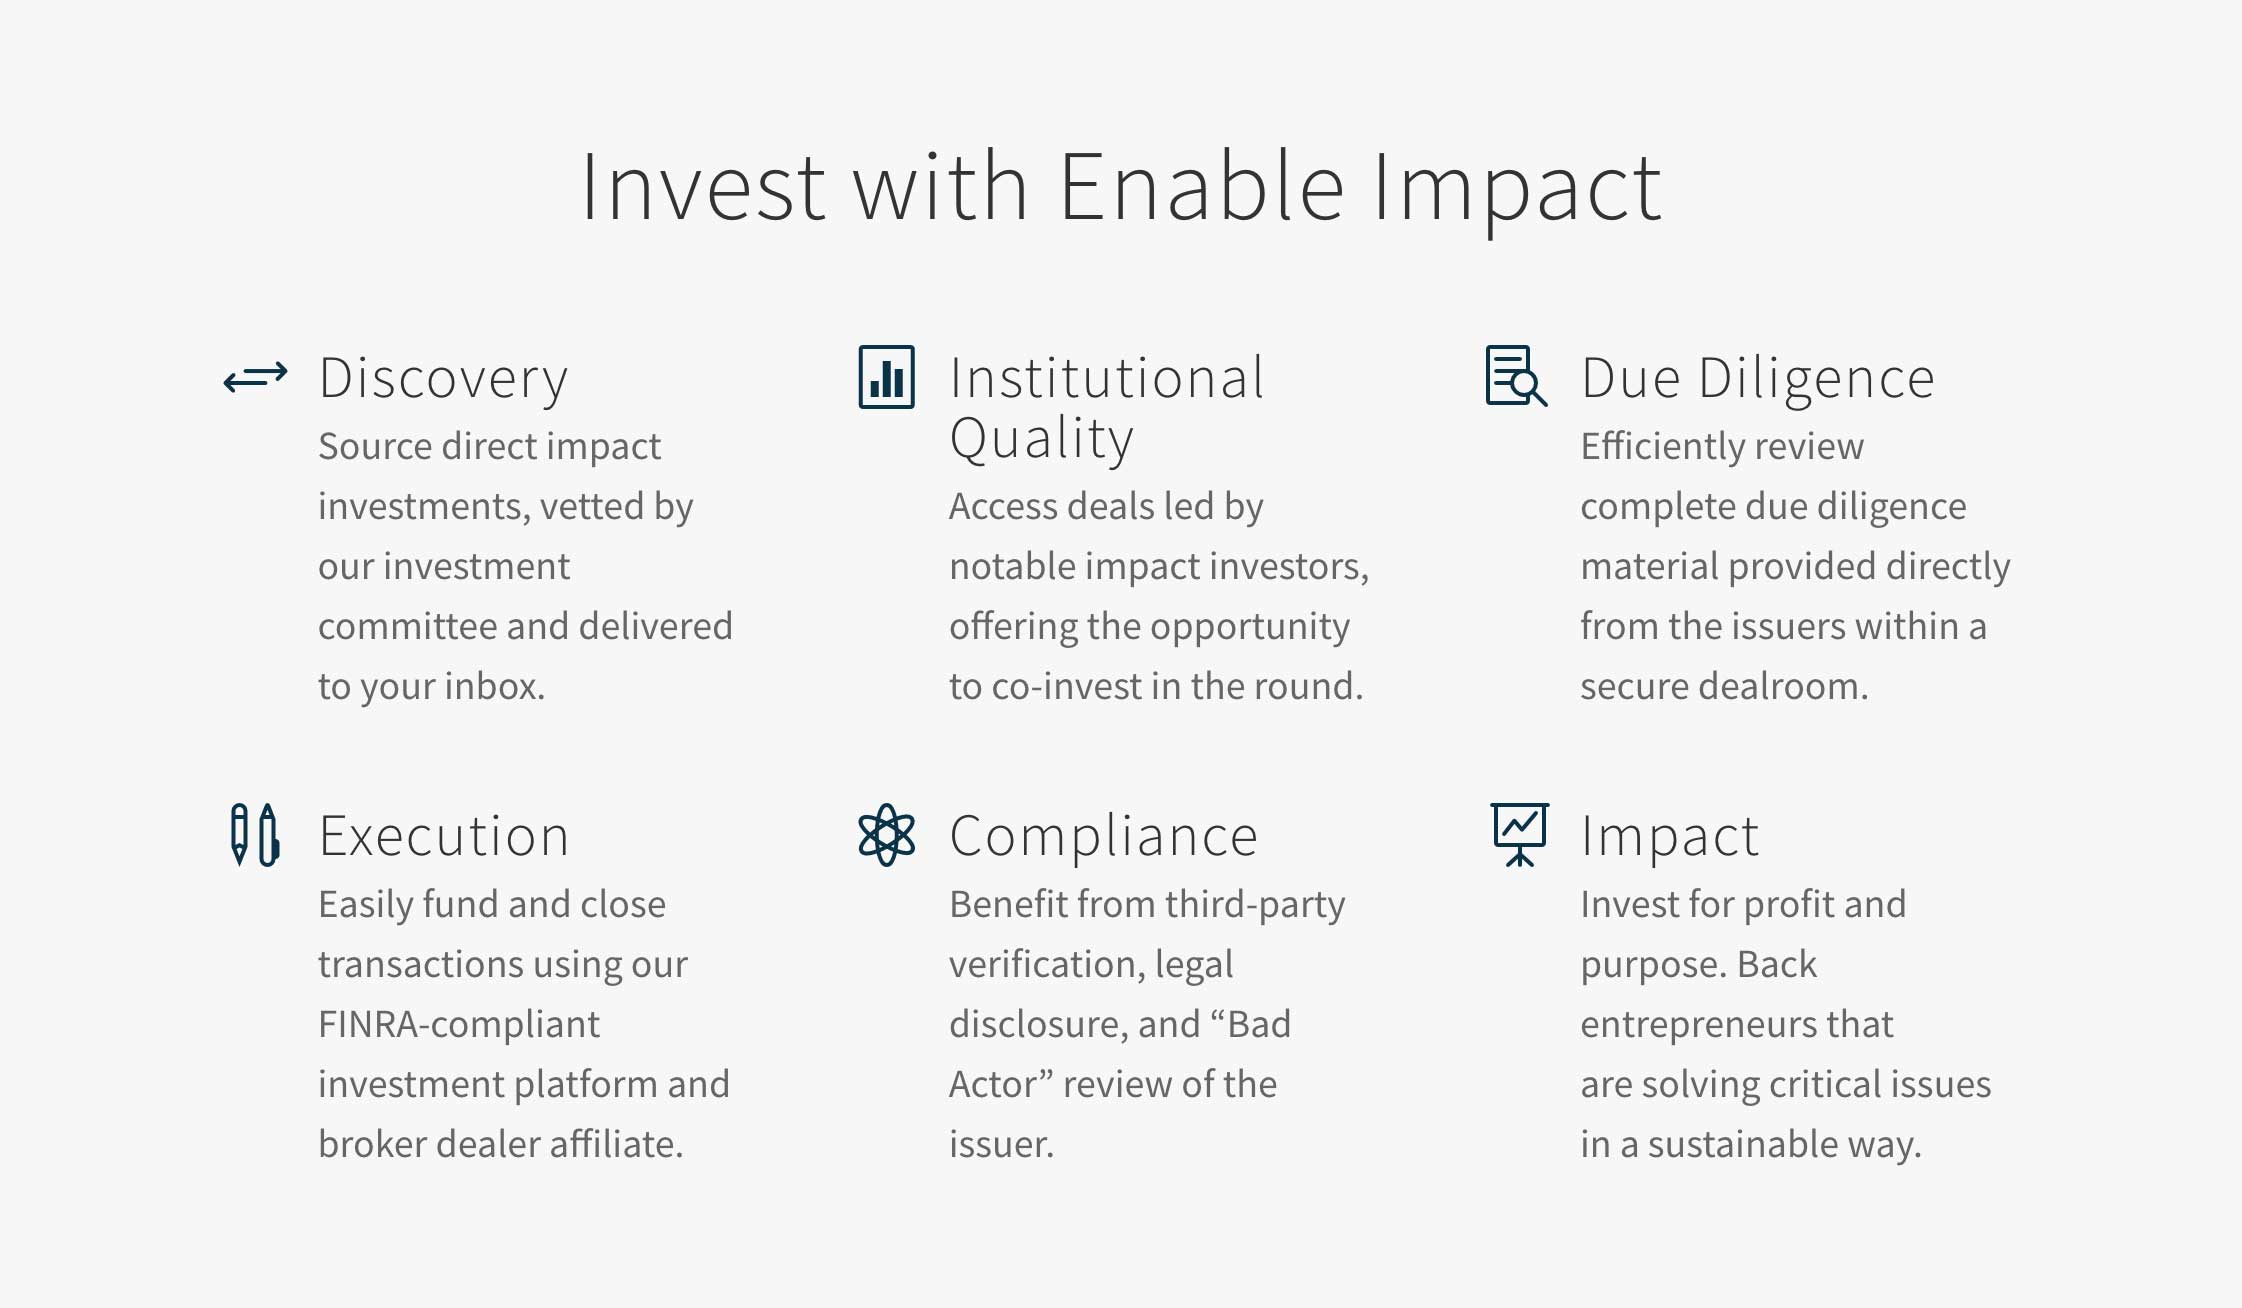 enable-impact-due-diligence.jpg